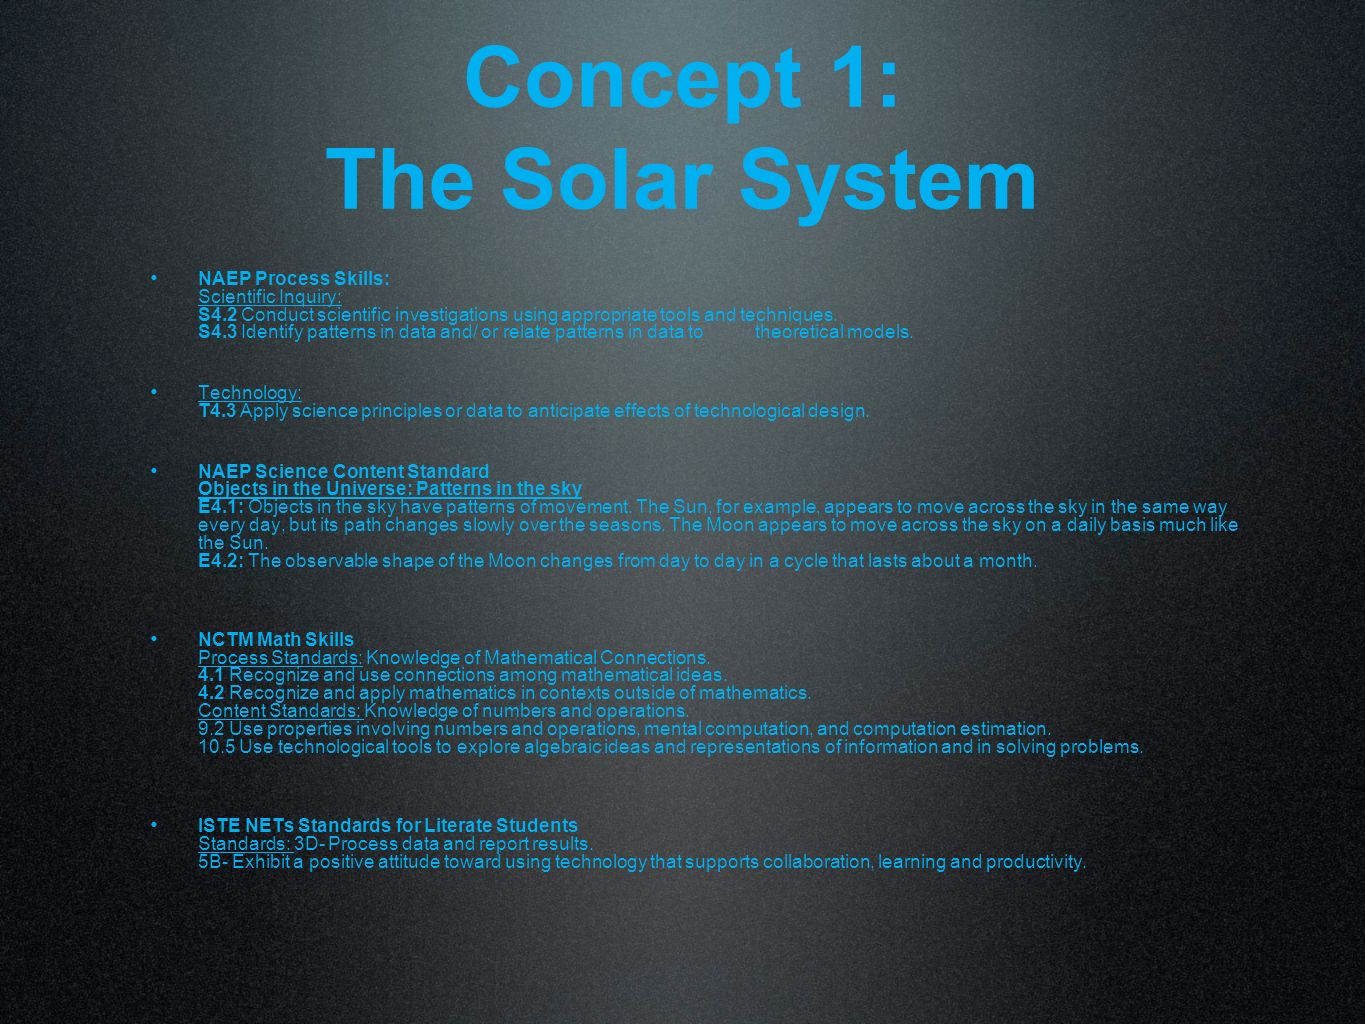 Concept 1: The Solar System